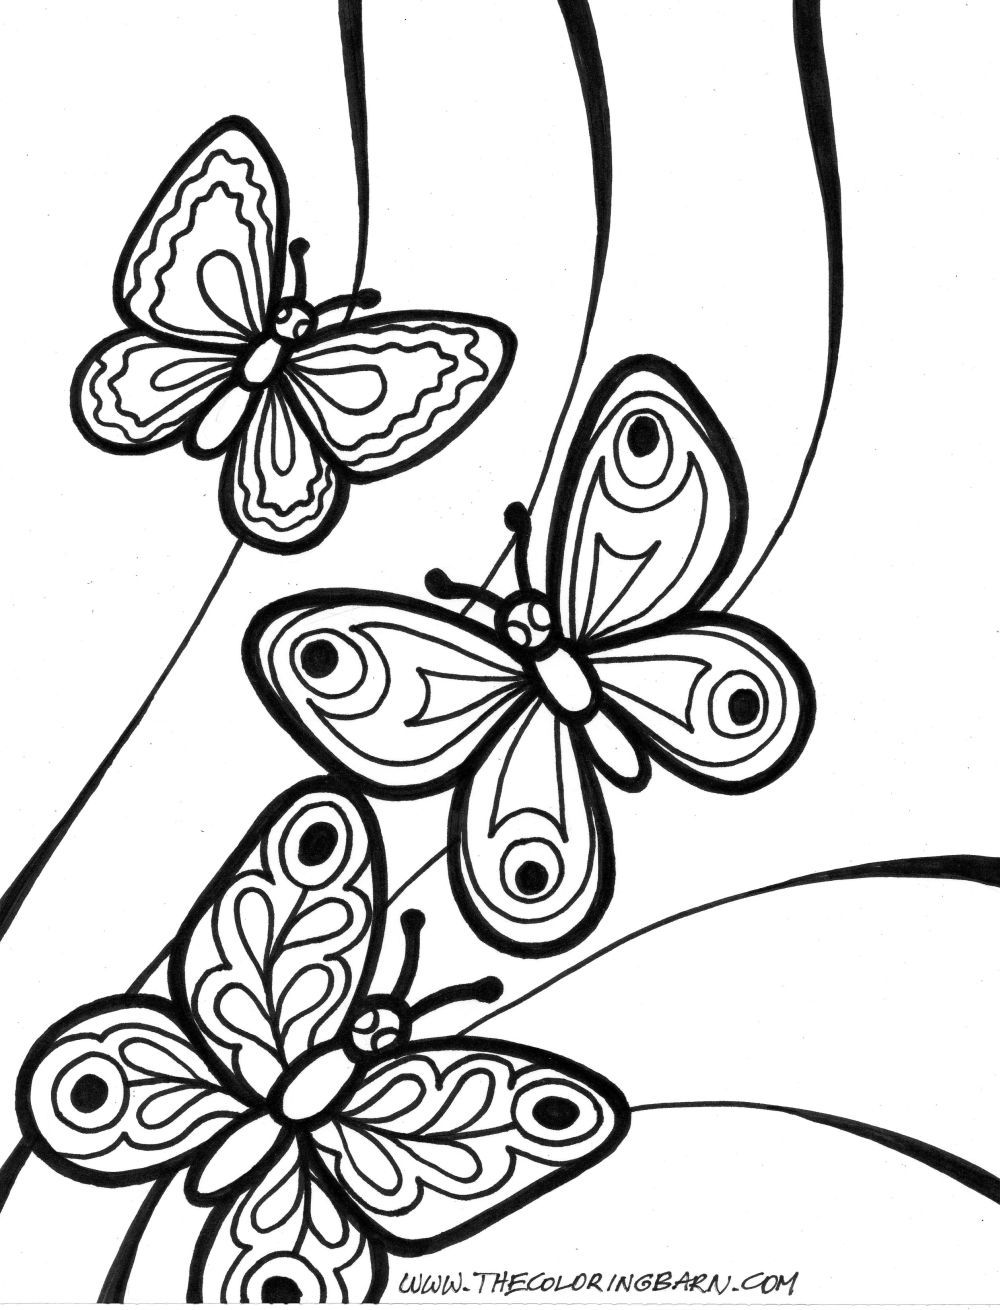 images of butterflies coloing pages | ... butterflies coloring page ...